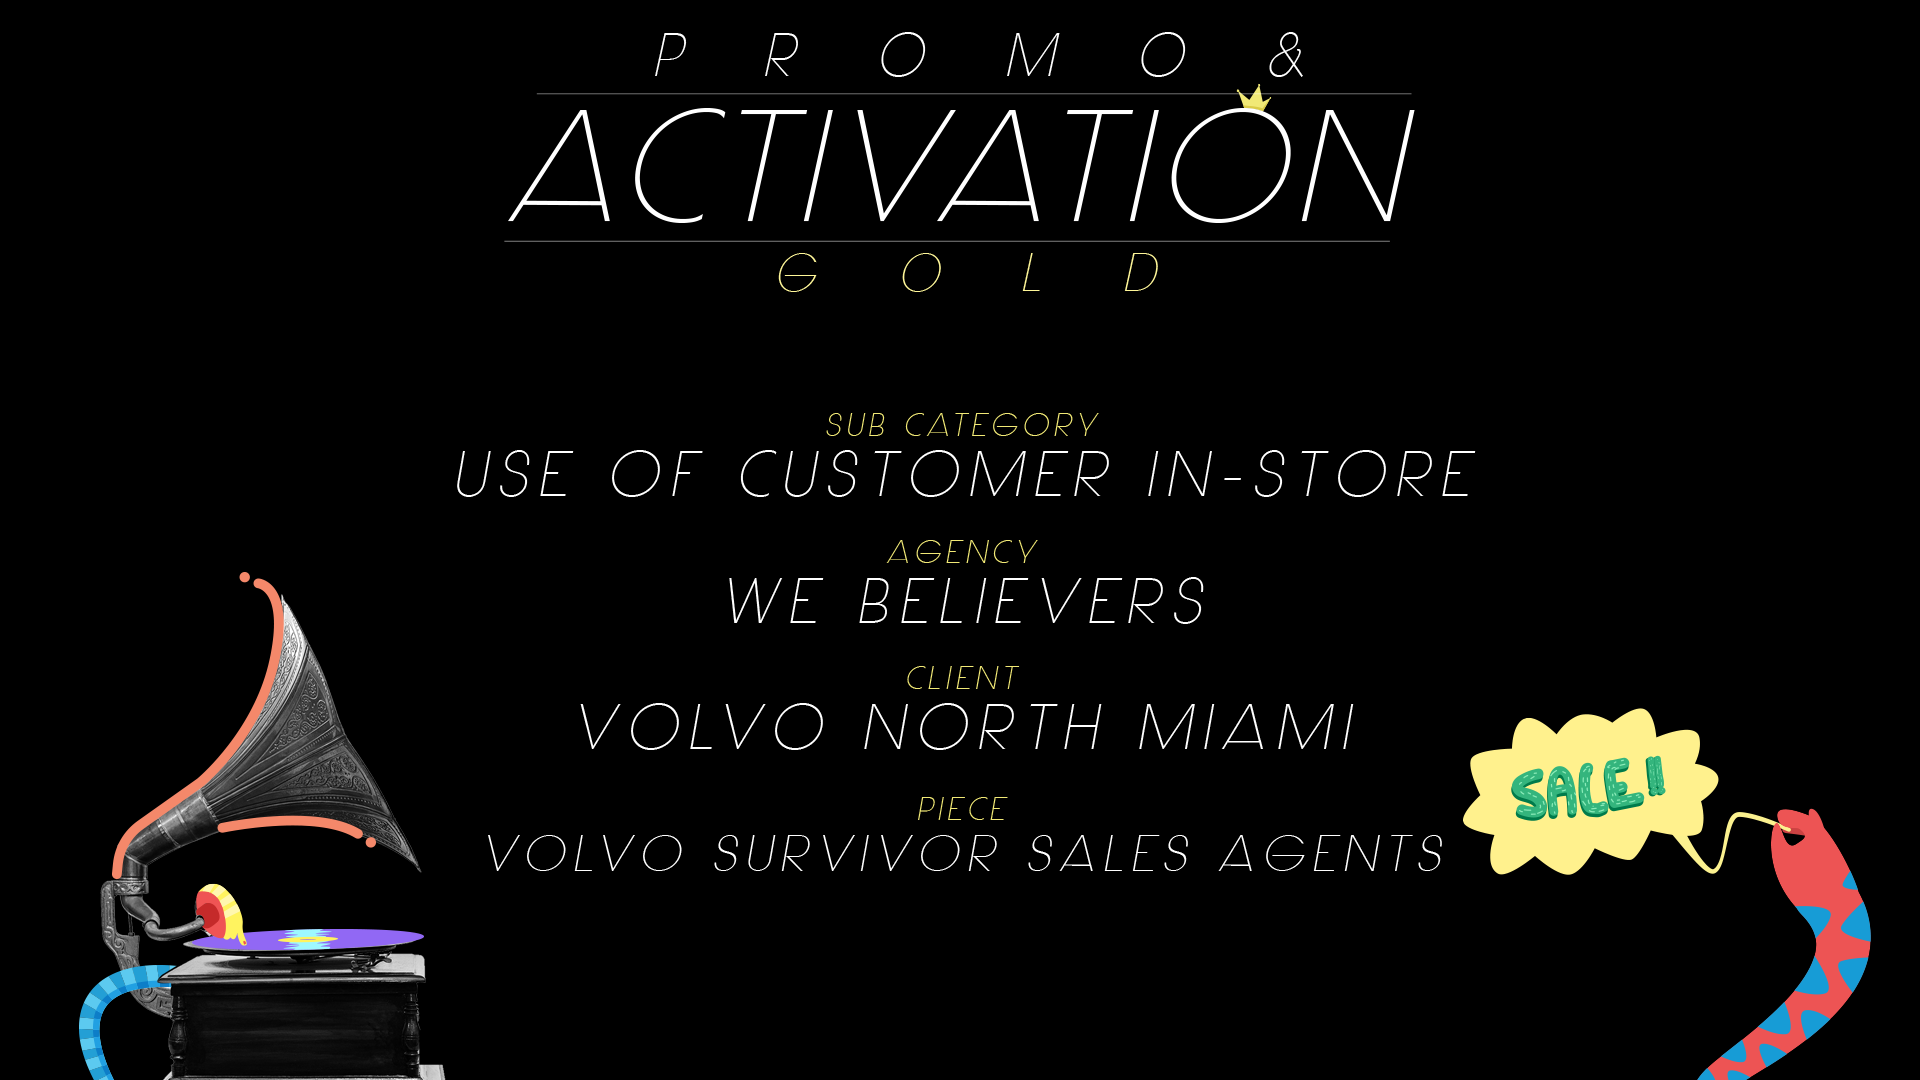 14.PLACAS GOLD-promo activation-USE OF CUSTOMER IN-STORE .png